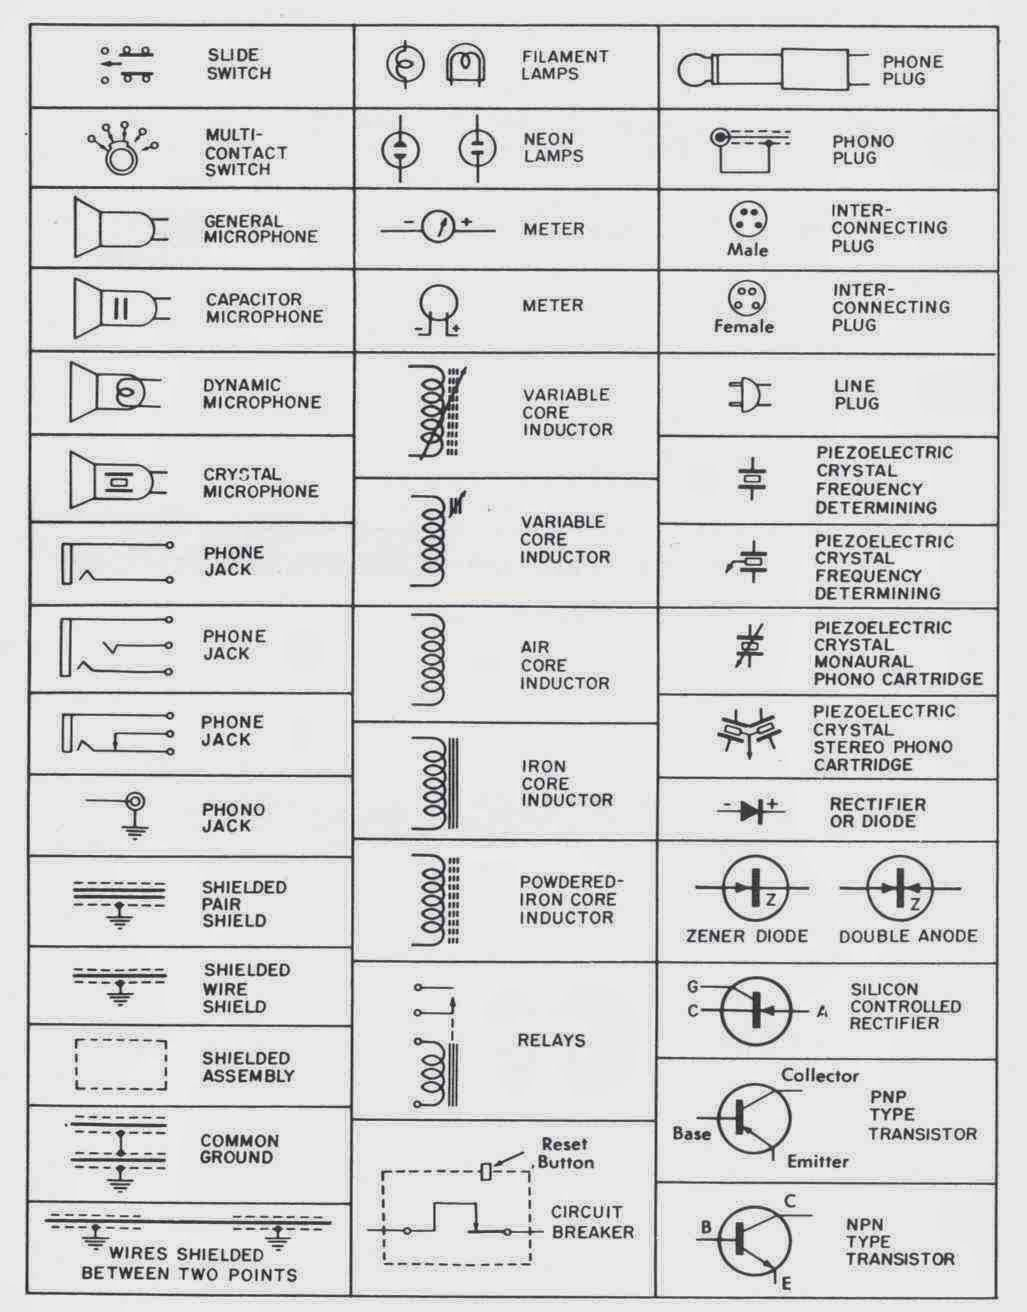 Electrical Wire Diagram Symbols Apple Airport 11 Engineering Pics